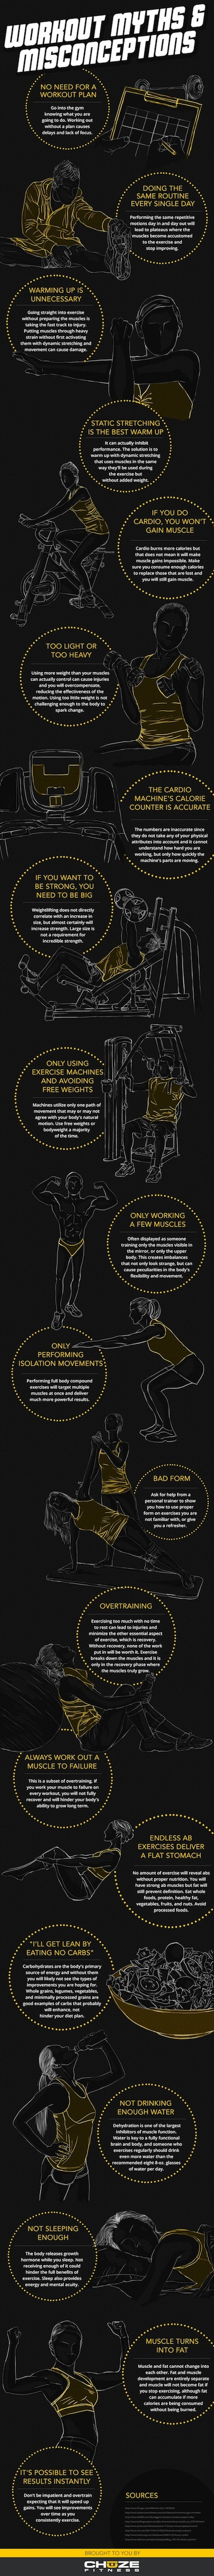 Workout Myths and Misconceptions Nina Cherie Franklin PhD